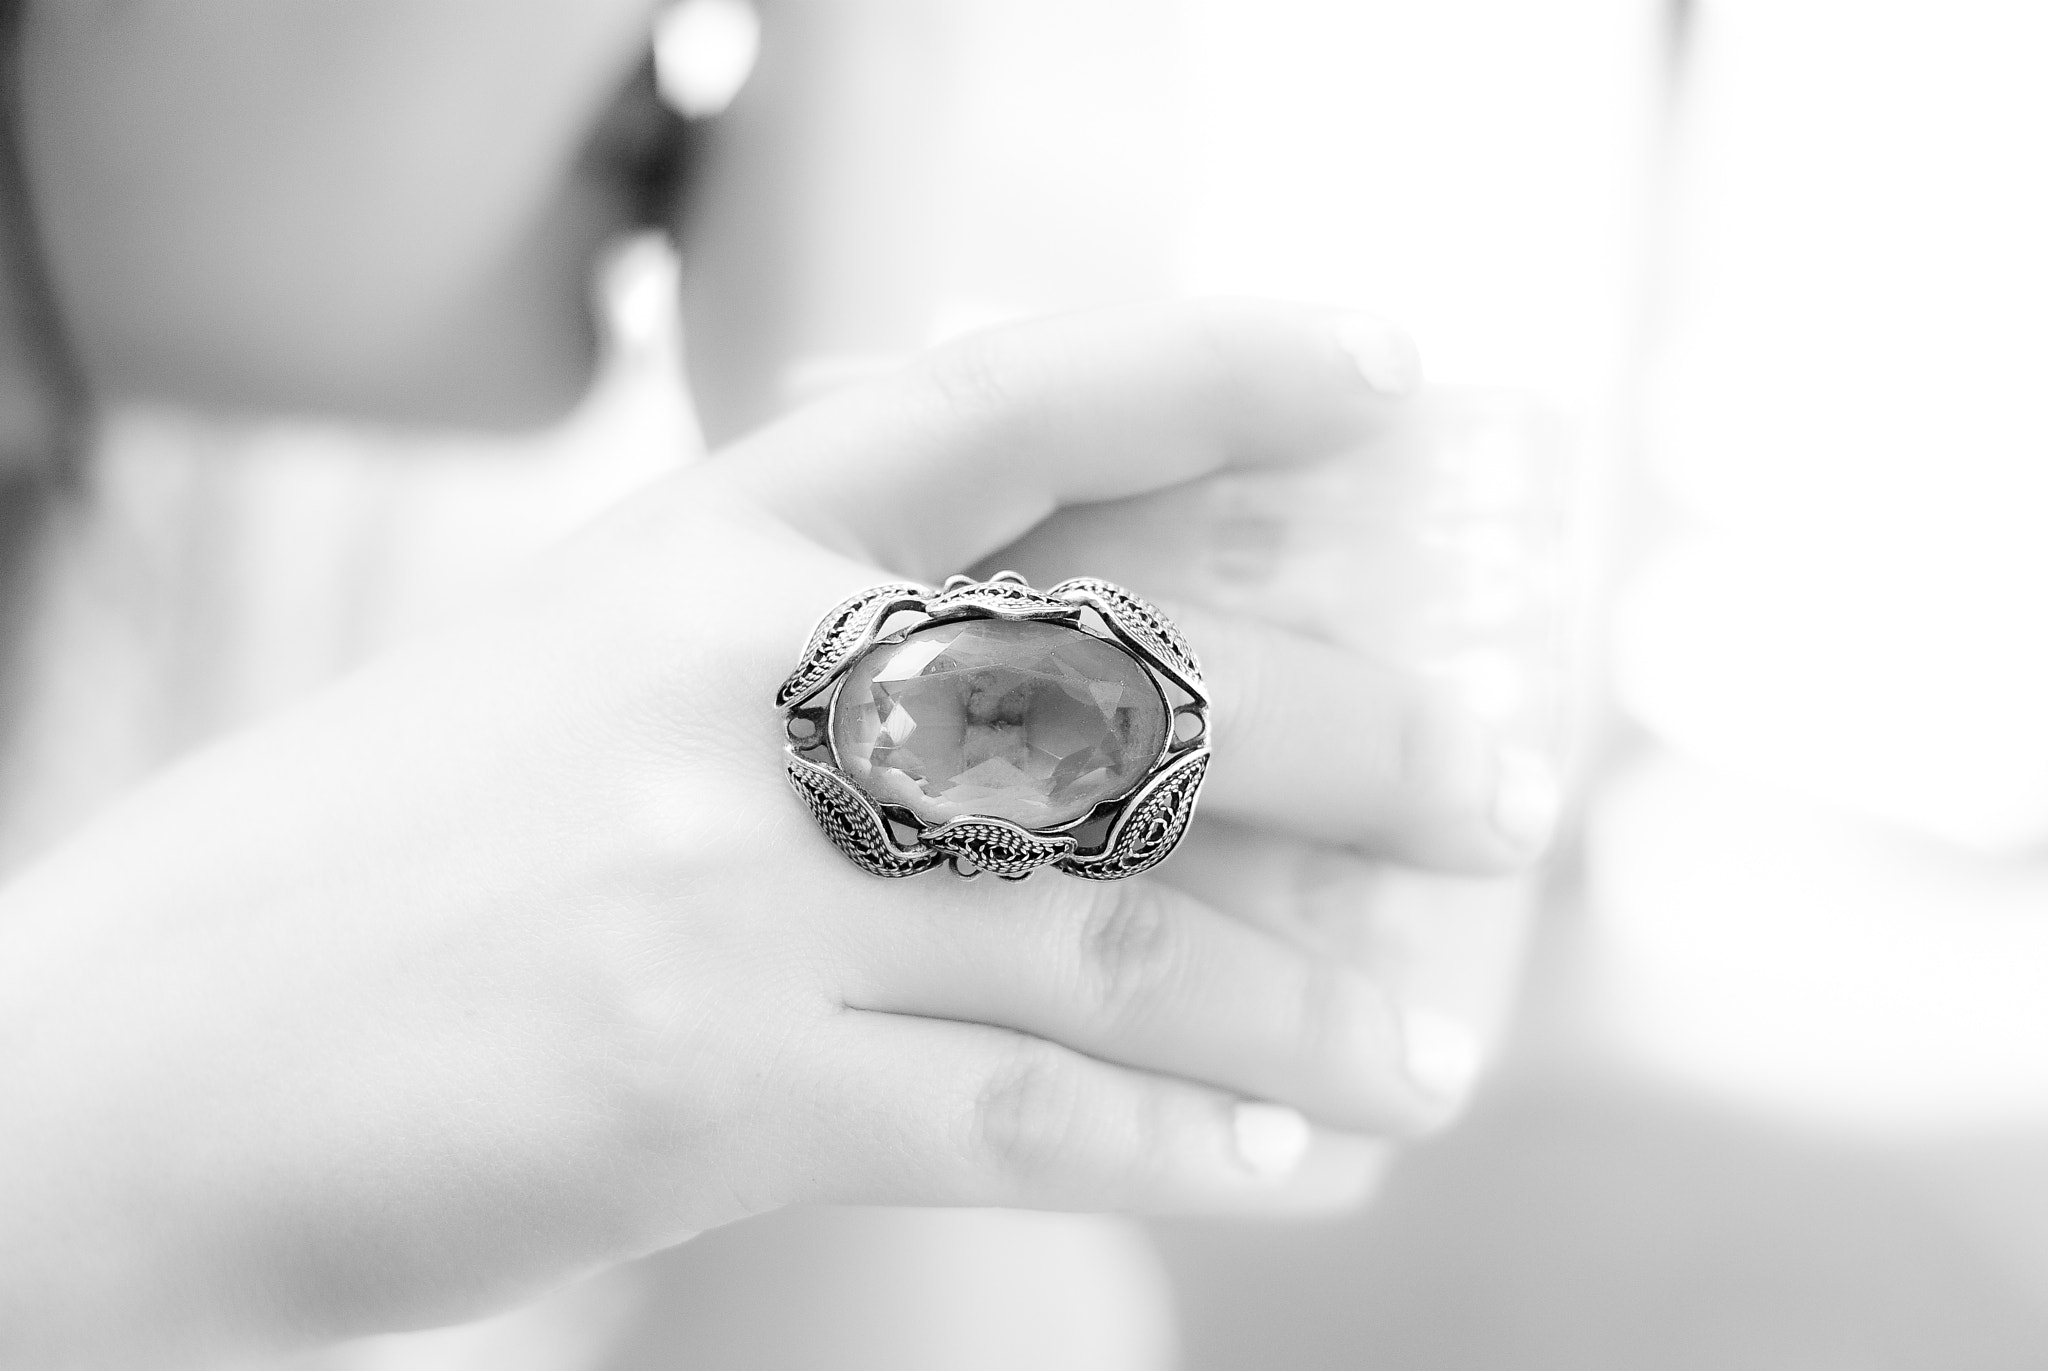 Photograph A ring on it by José Patiño on 500px